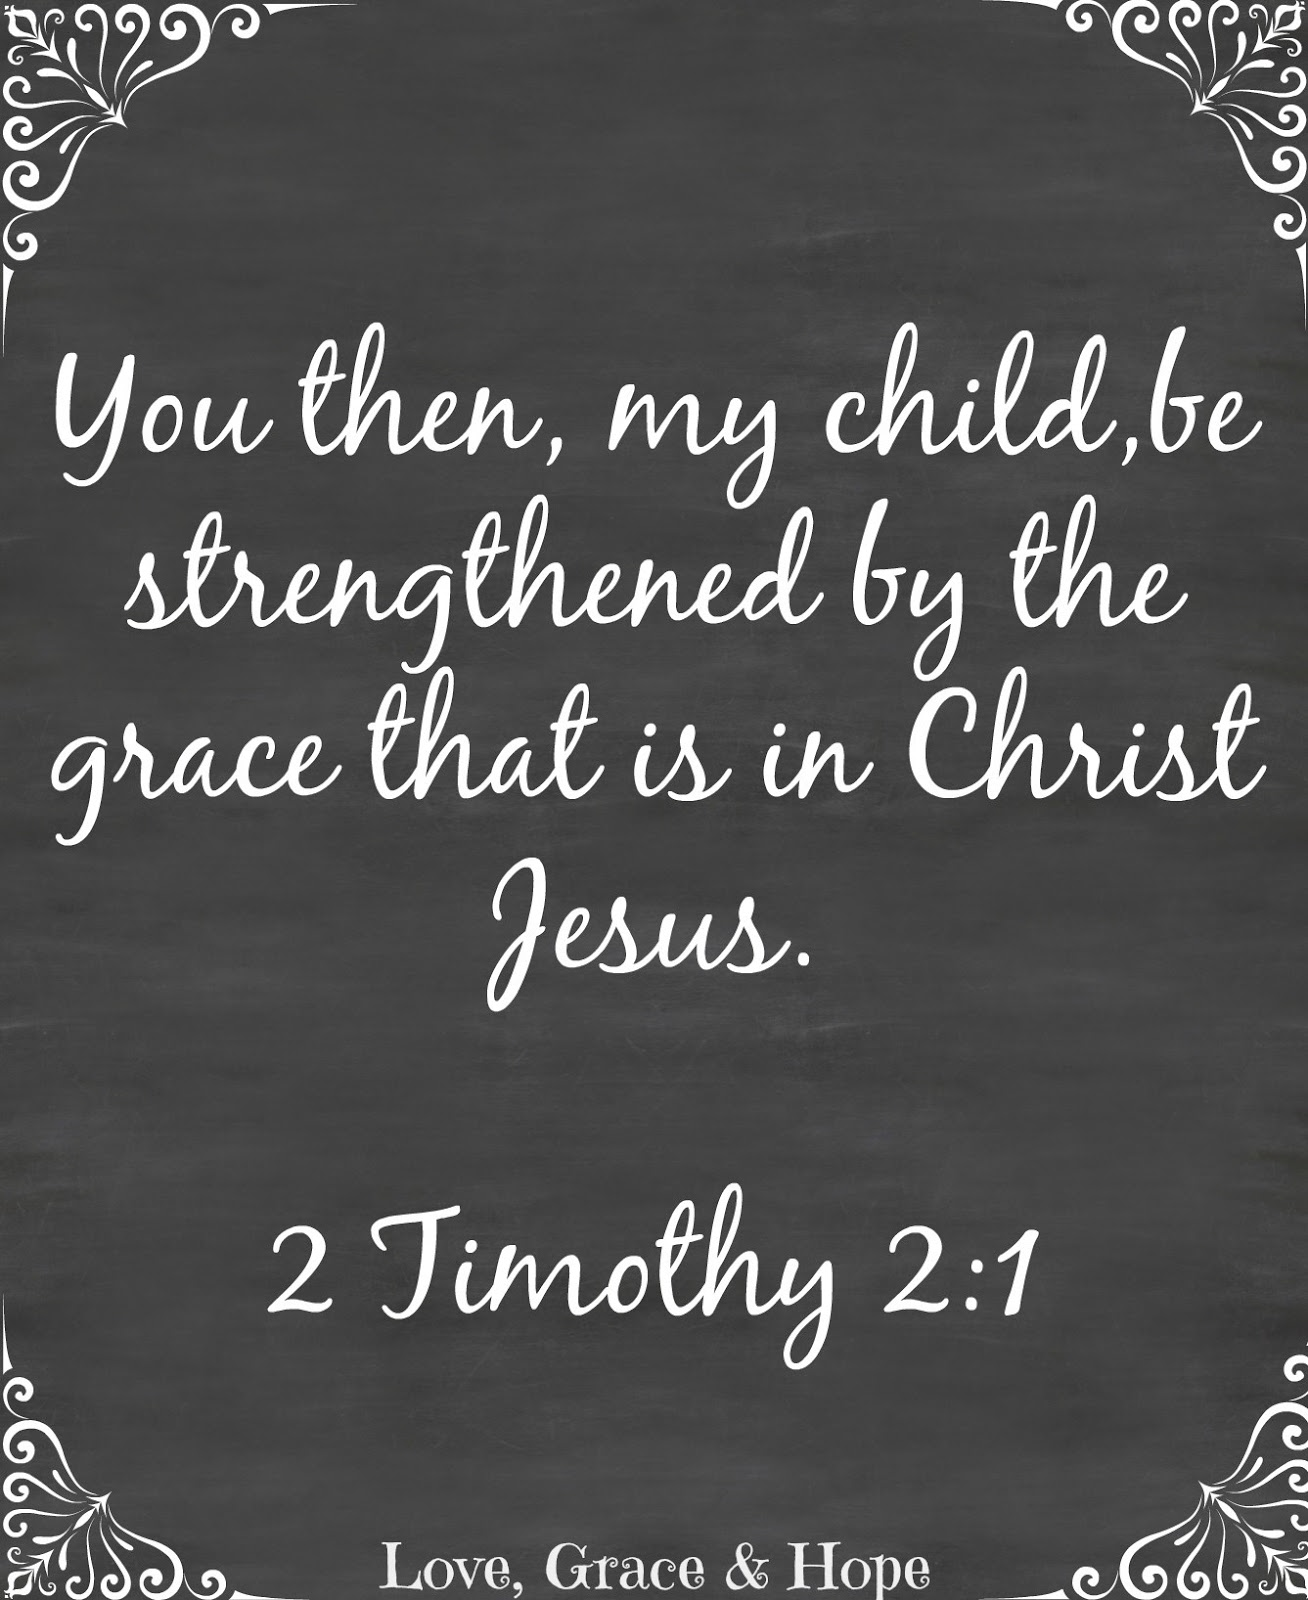 grace 2 Timothy 2:1 lovehopeandgrace